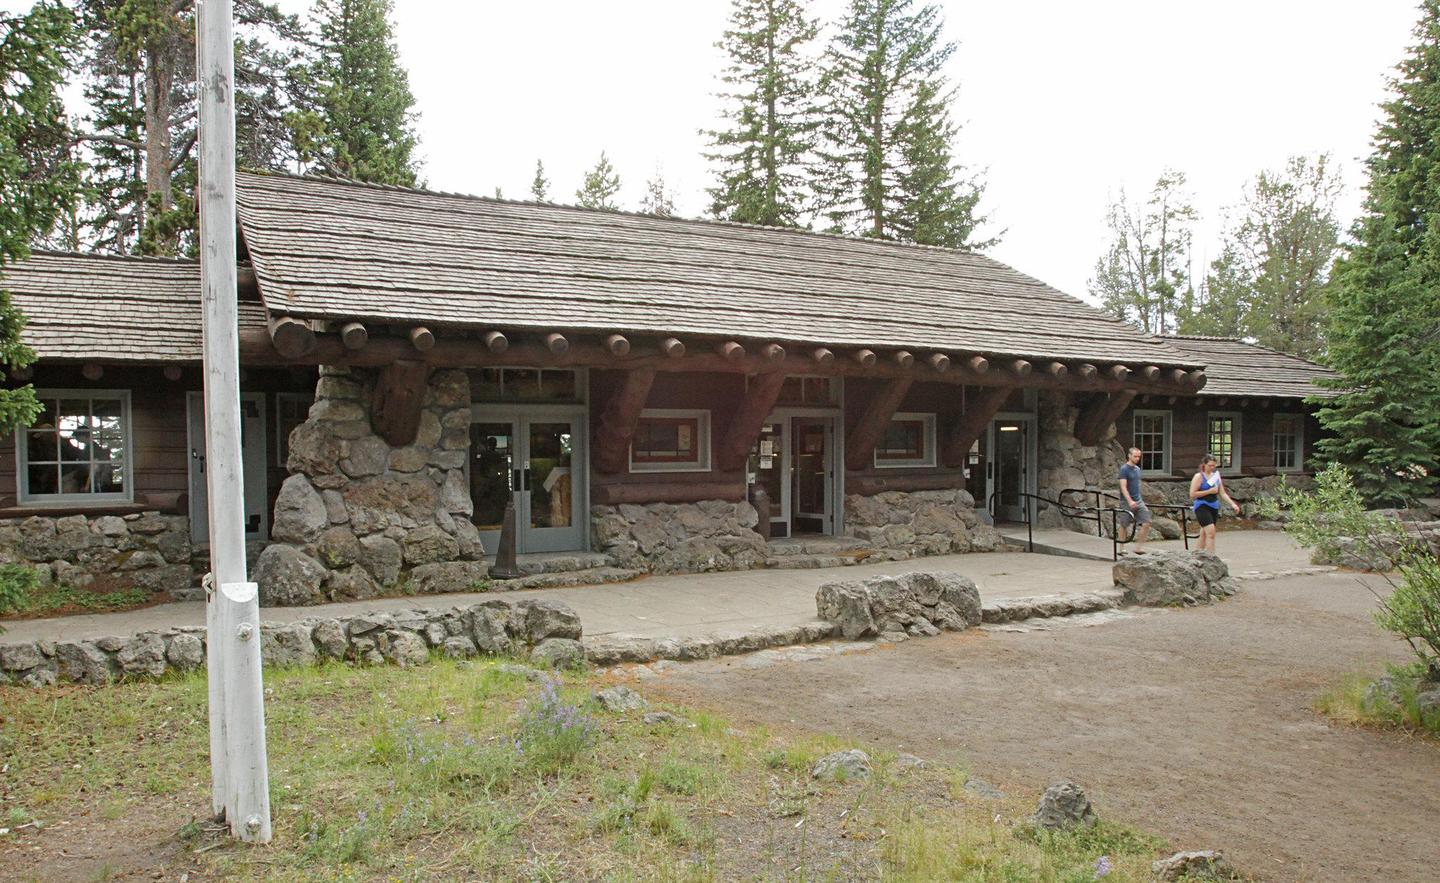 Preview photo of Fishing Bridge Visitor Center and Trailside Museum